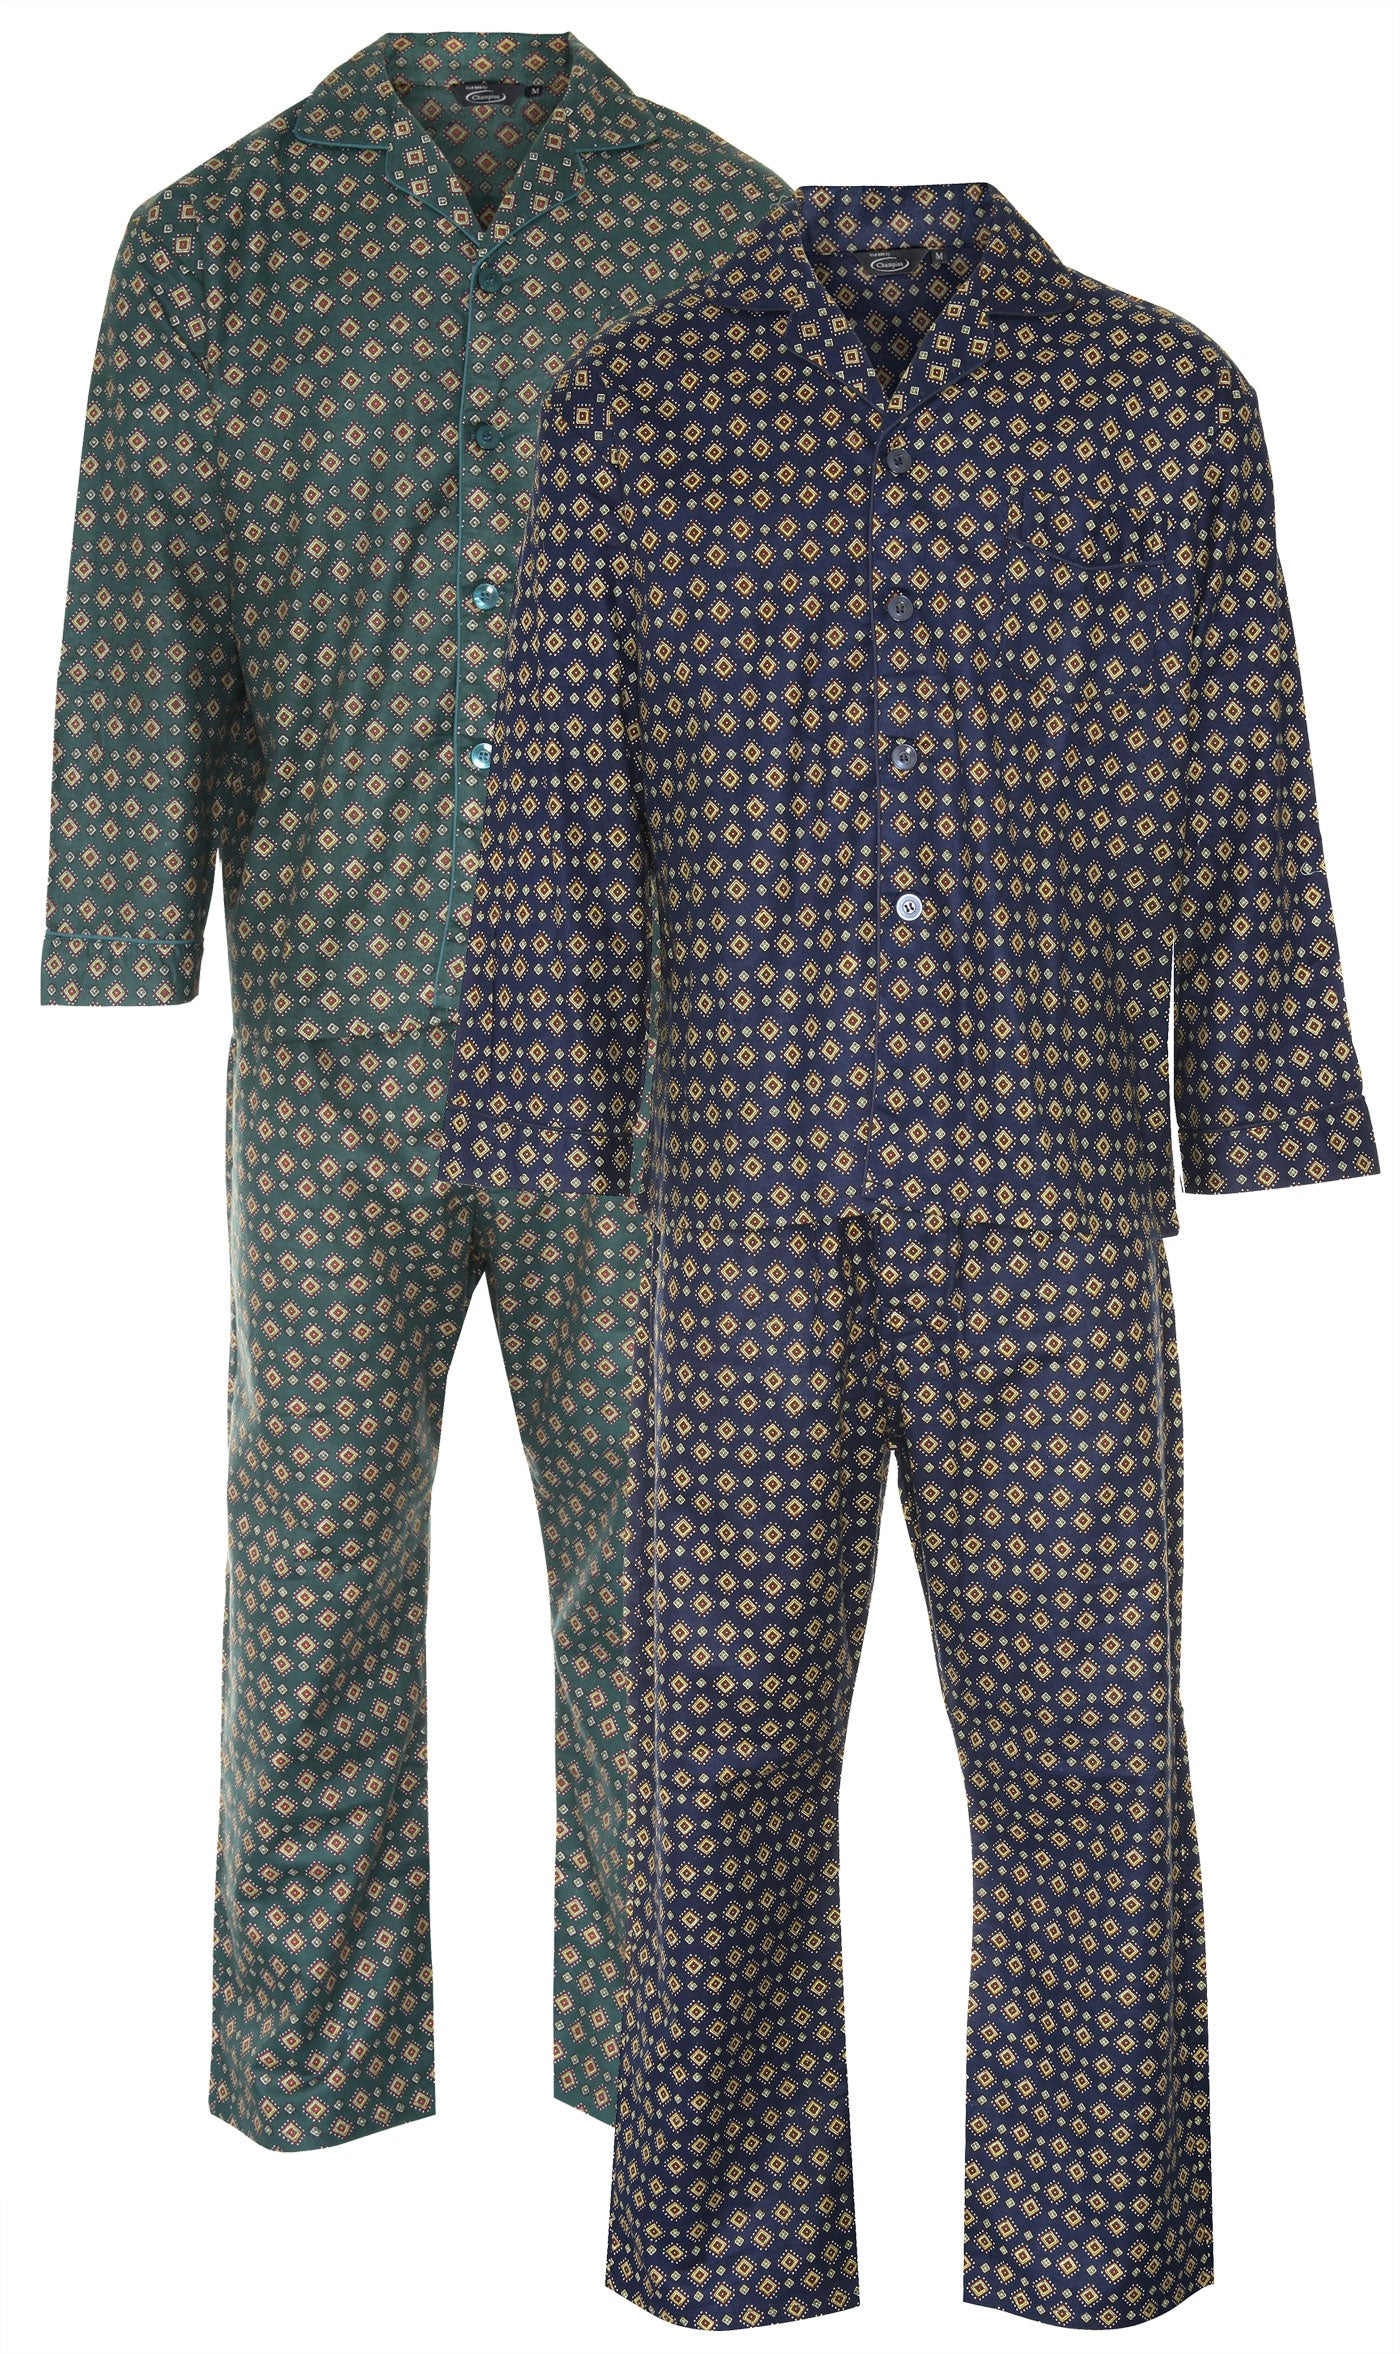 pair of pyjamas by champion blue sea pyjamas all pure cotton